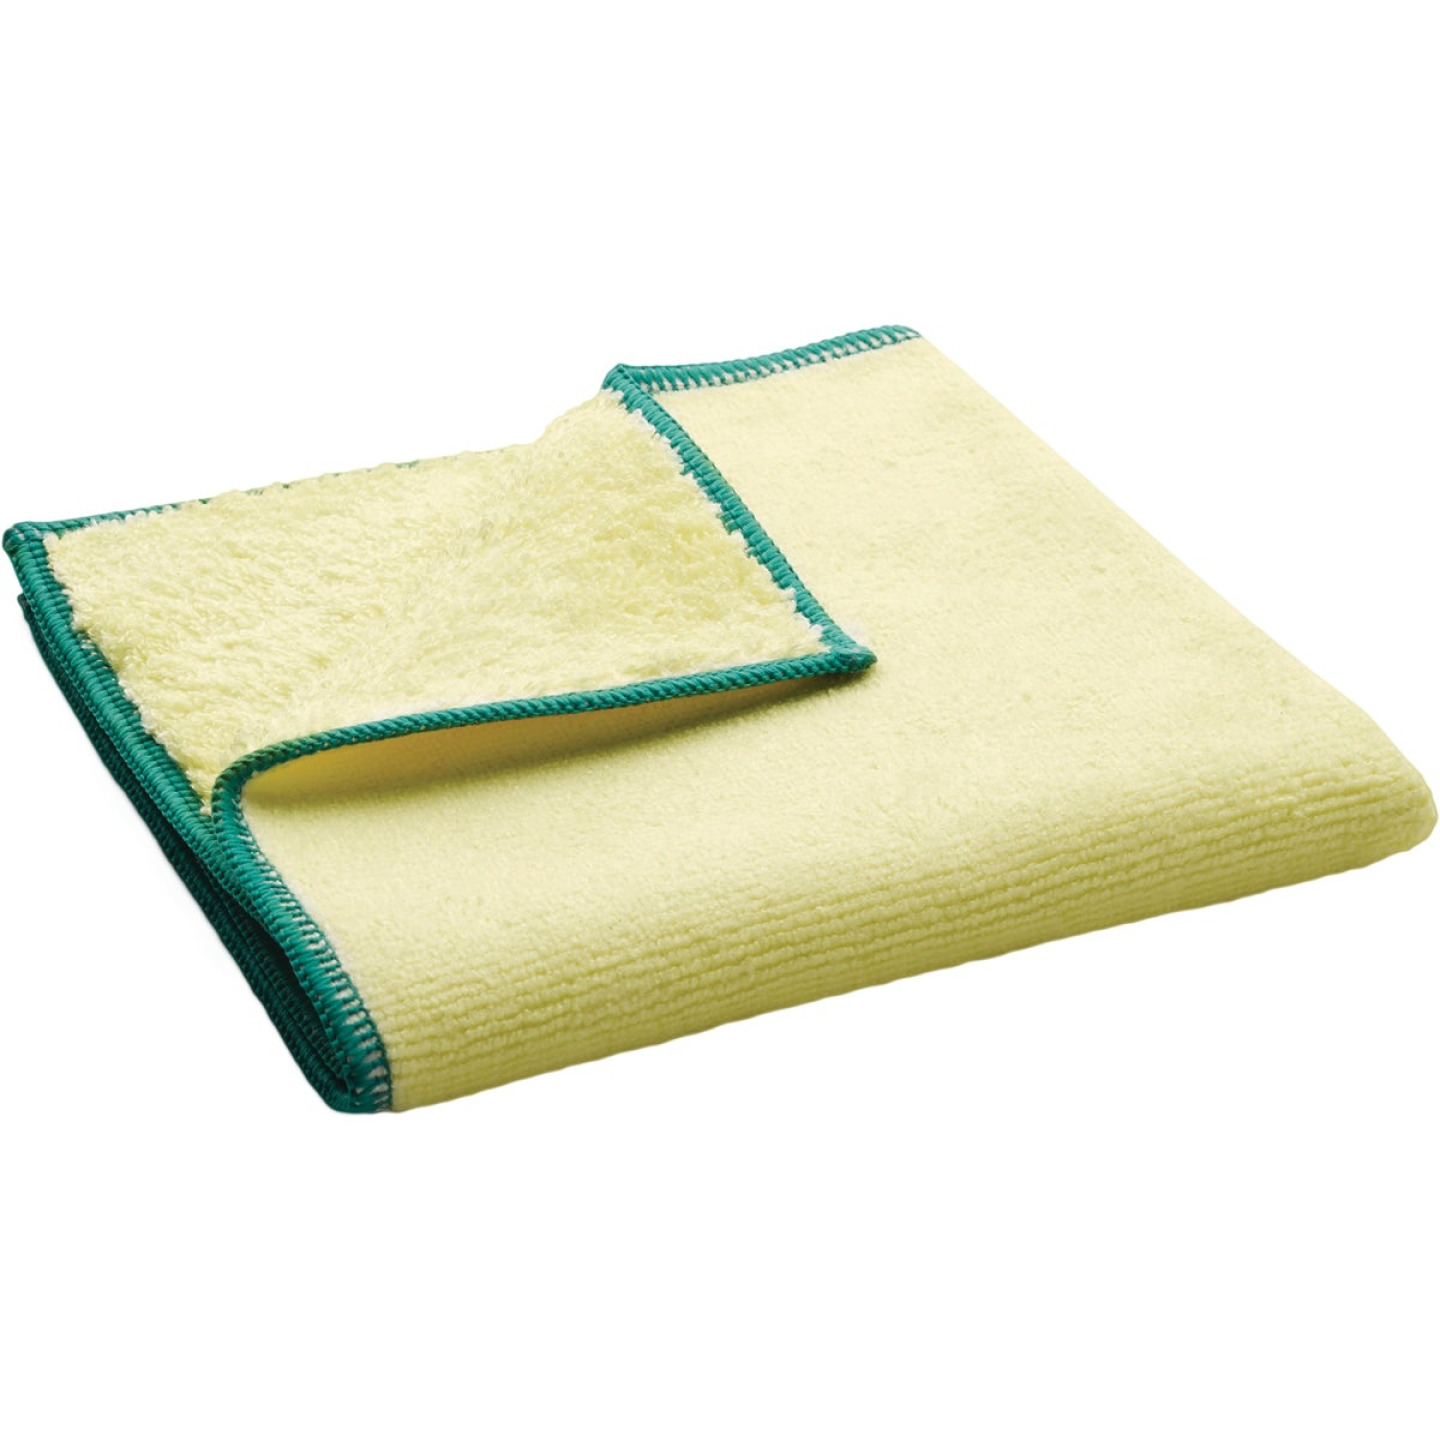 E-Cloth 12.5 In. x 12.5 in. High Performance Dusting & Cleaning Cloth Image 1